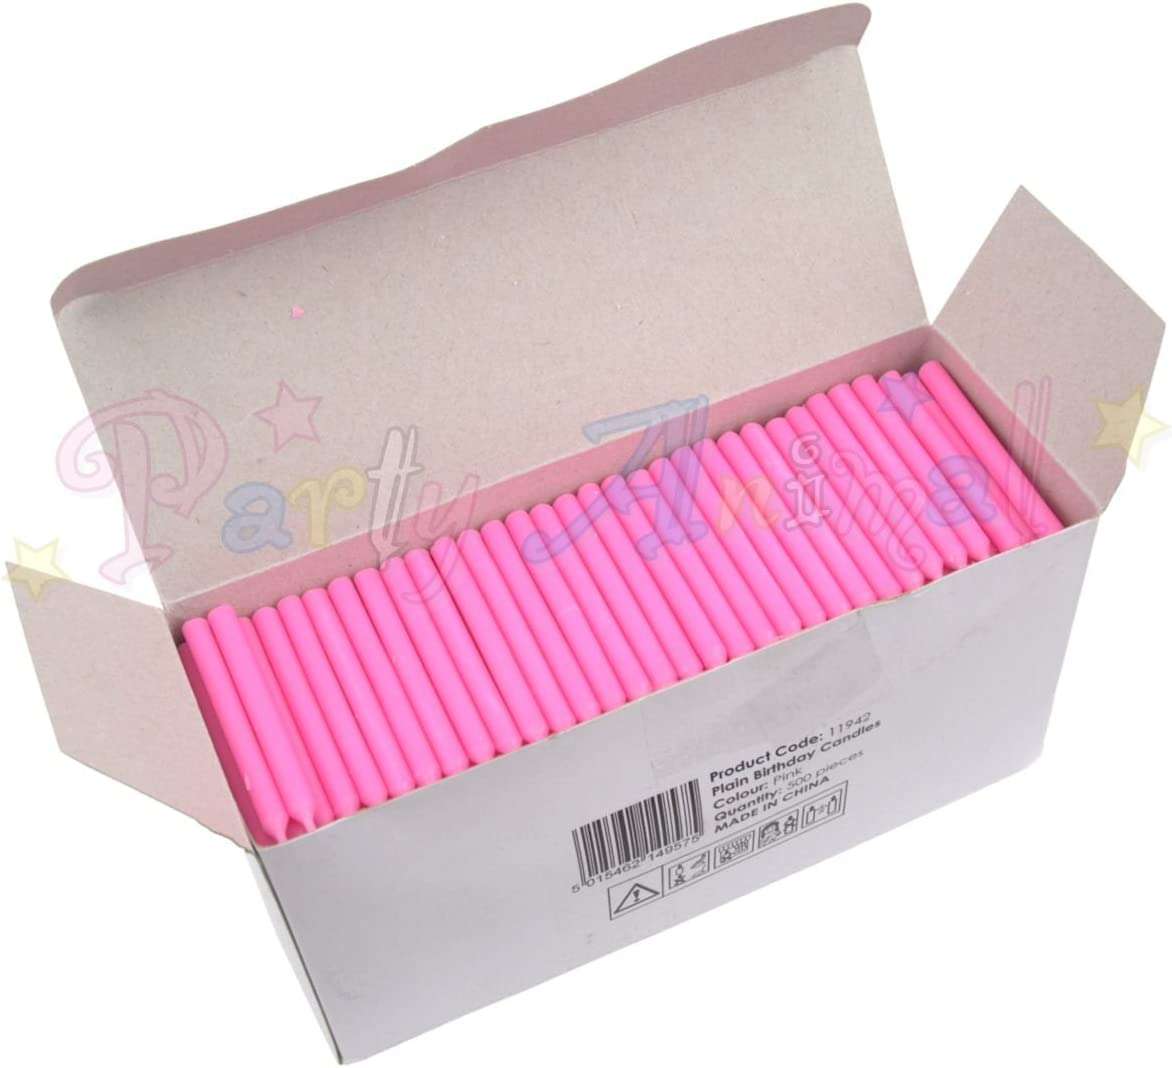 Cake decoration accessories Bulk Pack of Plain Birthday Candles or Holders Packs of 500 Mixed Candles